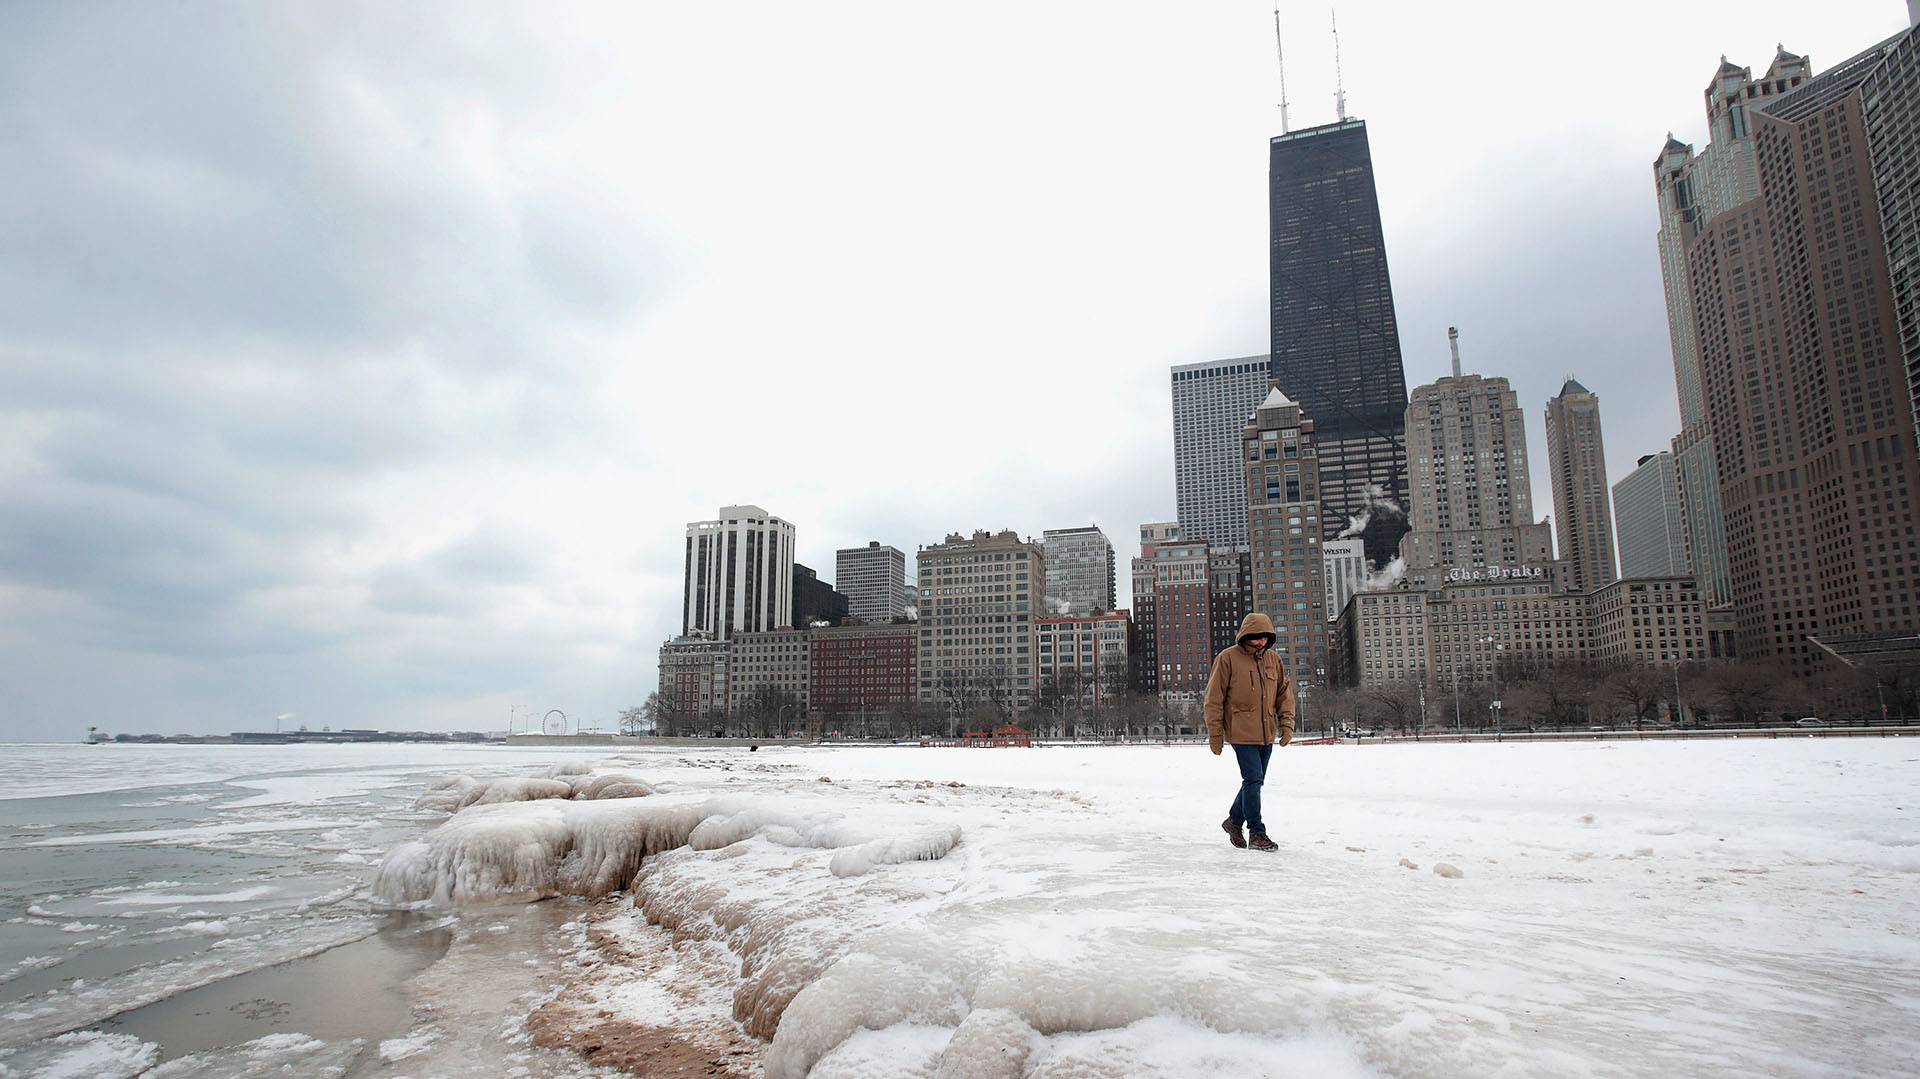 La costa del Lago Michigan en Chicago, completamente congelada (Olson/Getty Images/AFP)